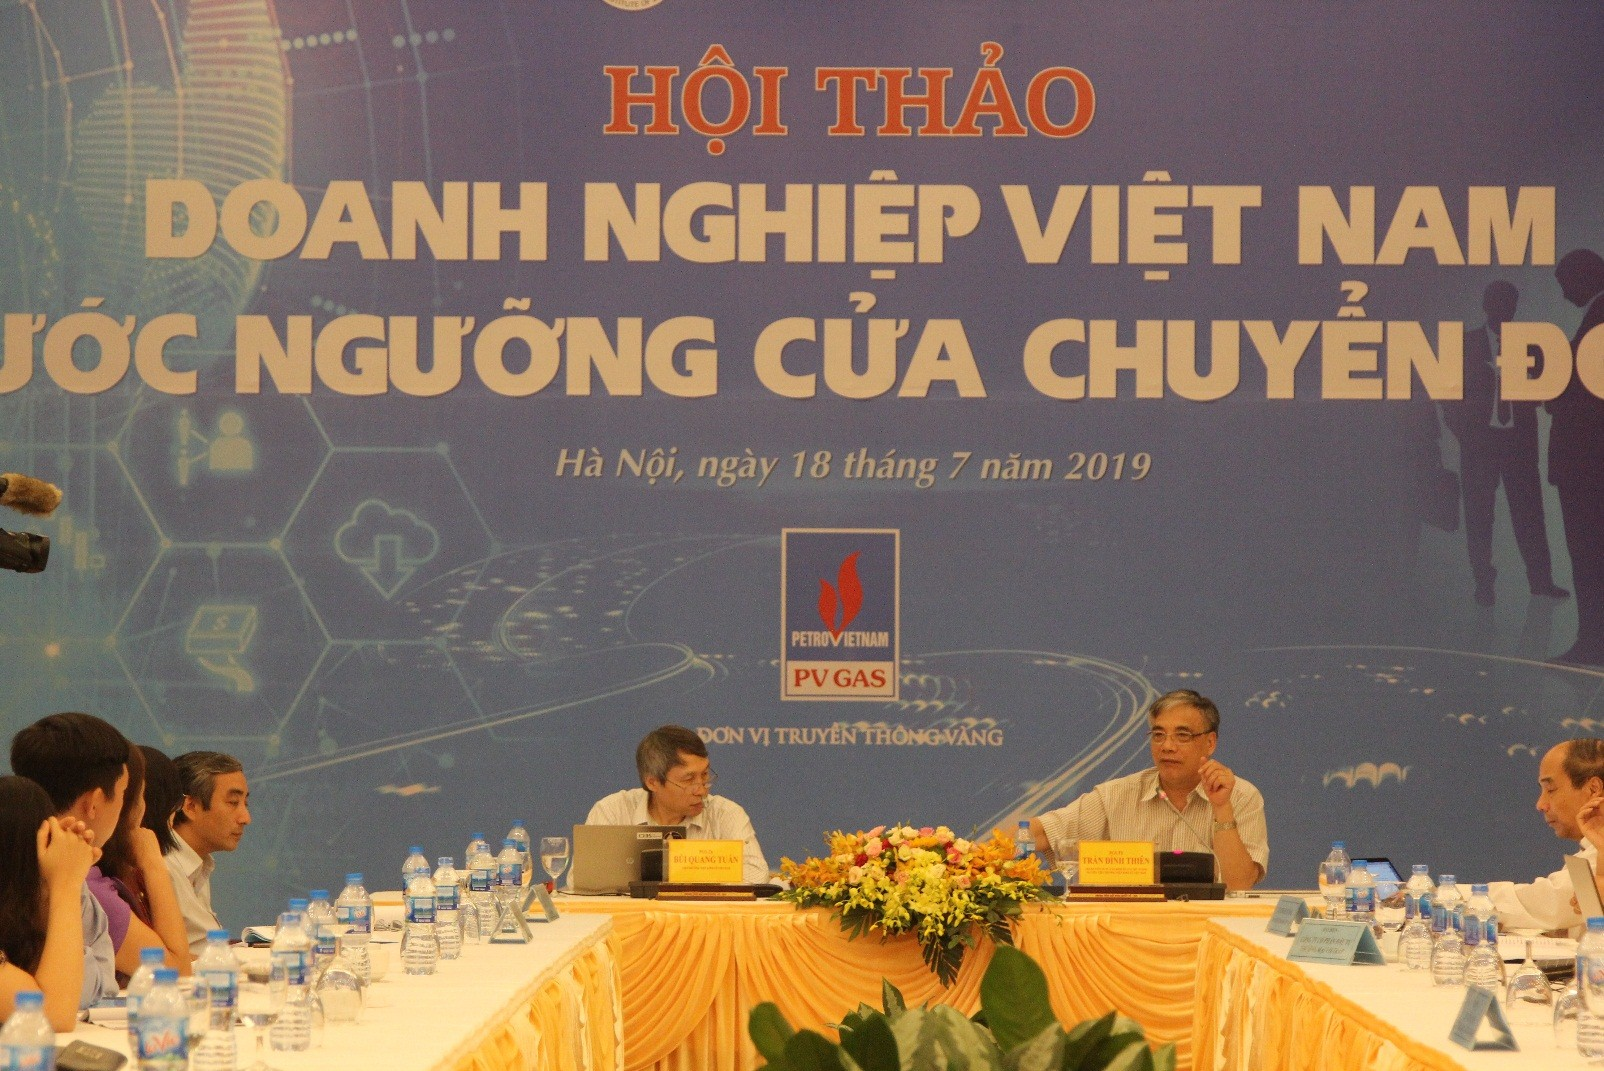 Assoc. Prof.Dr. Bui Quang Tuan (left) and Assoc.Prof.Dr. Tran Dinh Thien (right) co-chaired the seminar